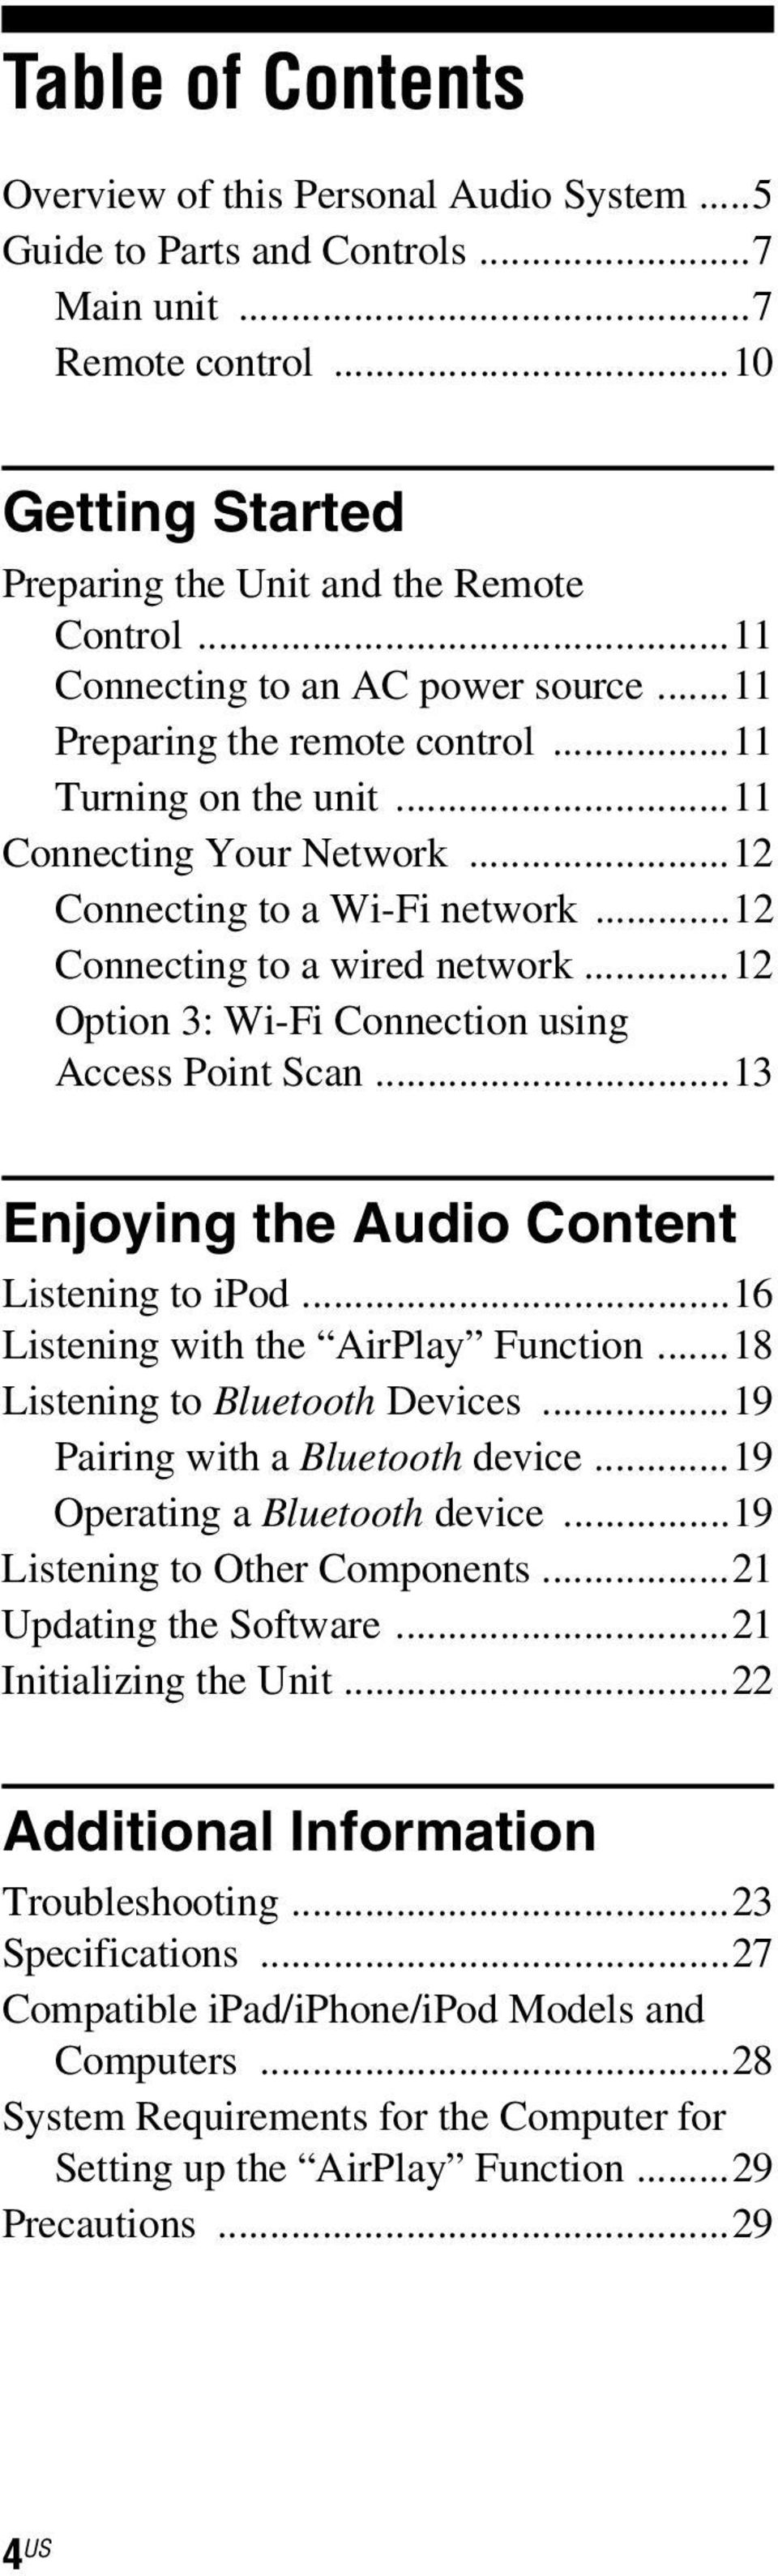 ..12 Option 3: Wi-Fi Connection using Access Point Scan...13 Enjoying the Audio Content Listening to ipod...16 Listening with the AirPlay Function...18 Listening to Bluetooth Devices.